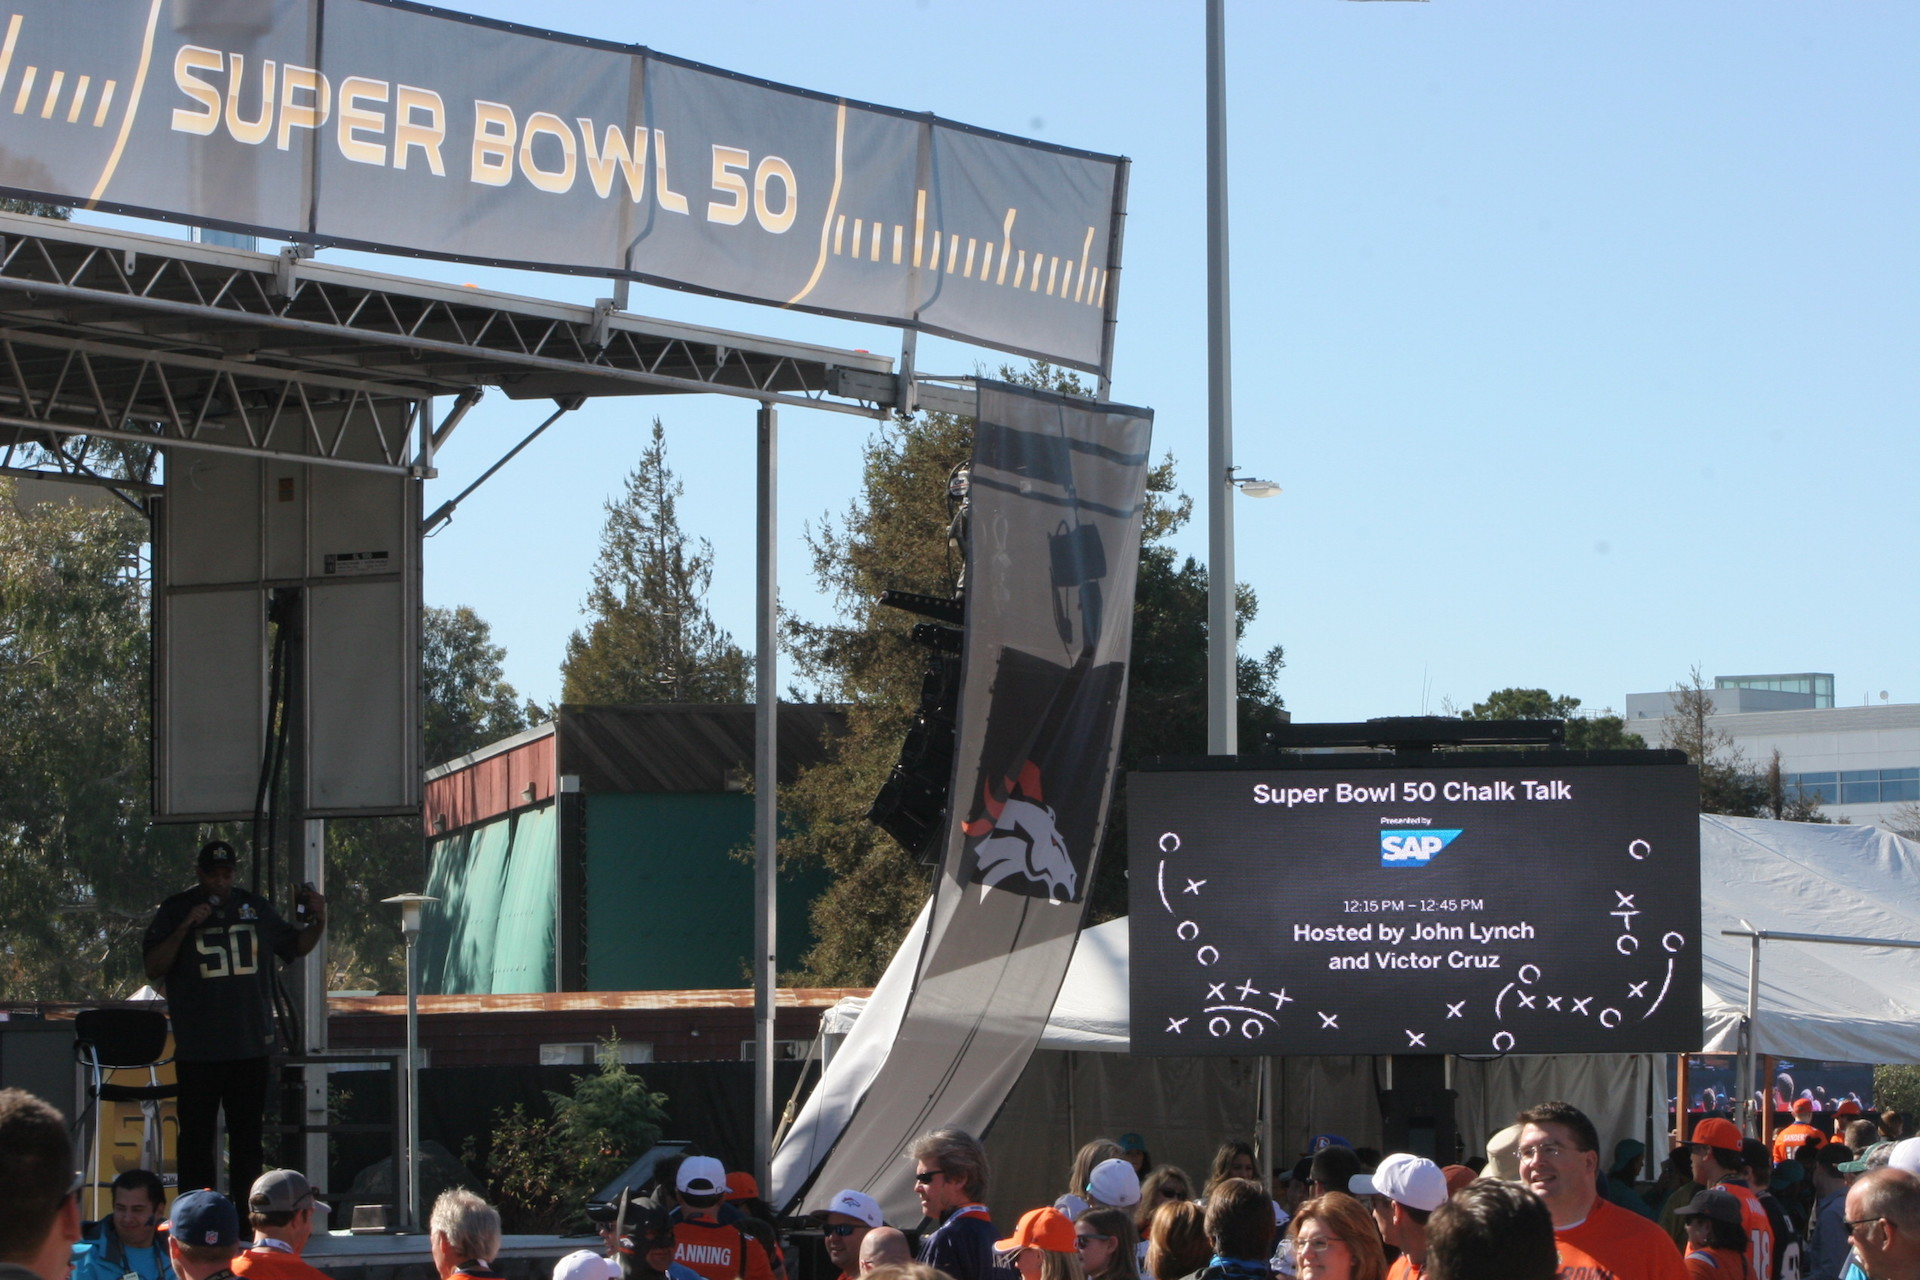 LED Screen Rental for Outdoor Events and Viewing Parties